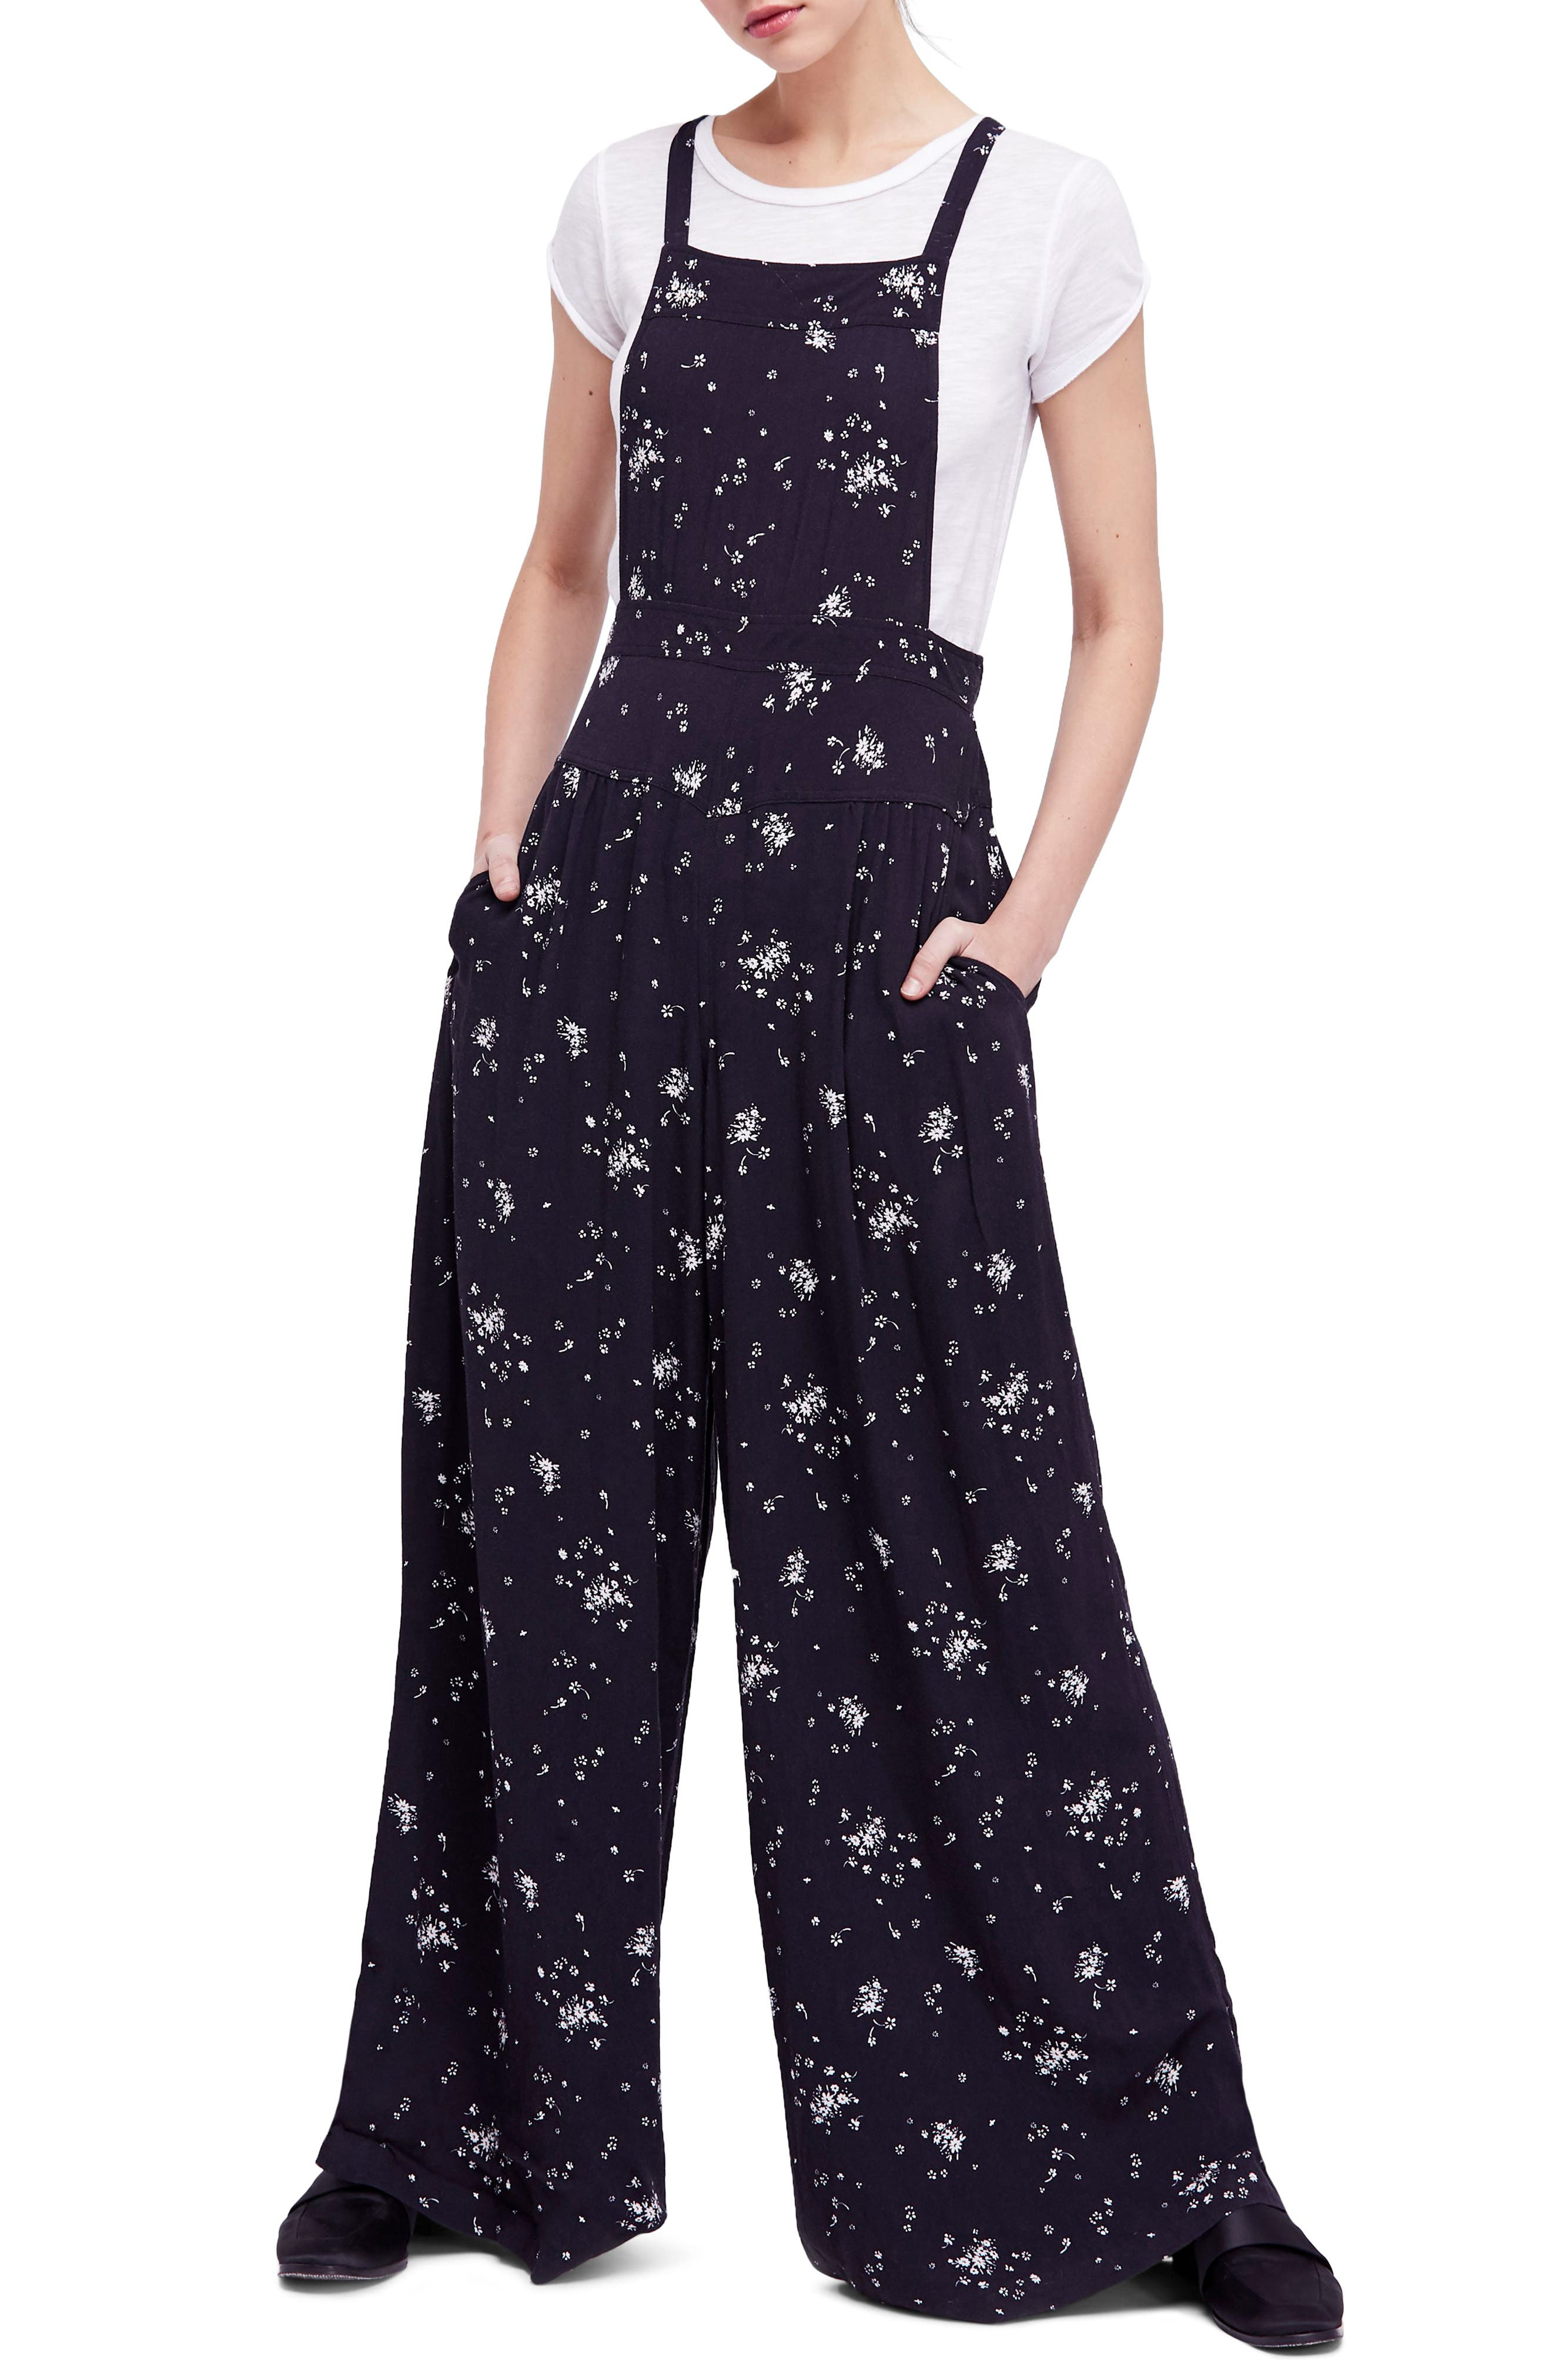 Sweet in the Streets Overalls,                         Main,                         color, 001